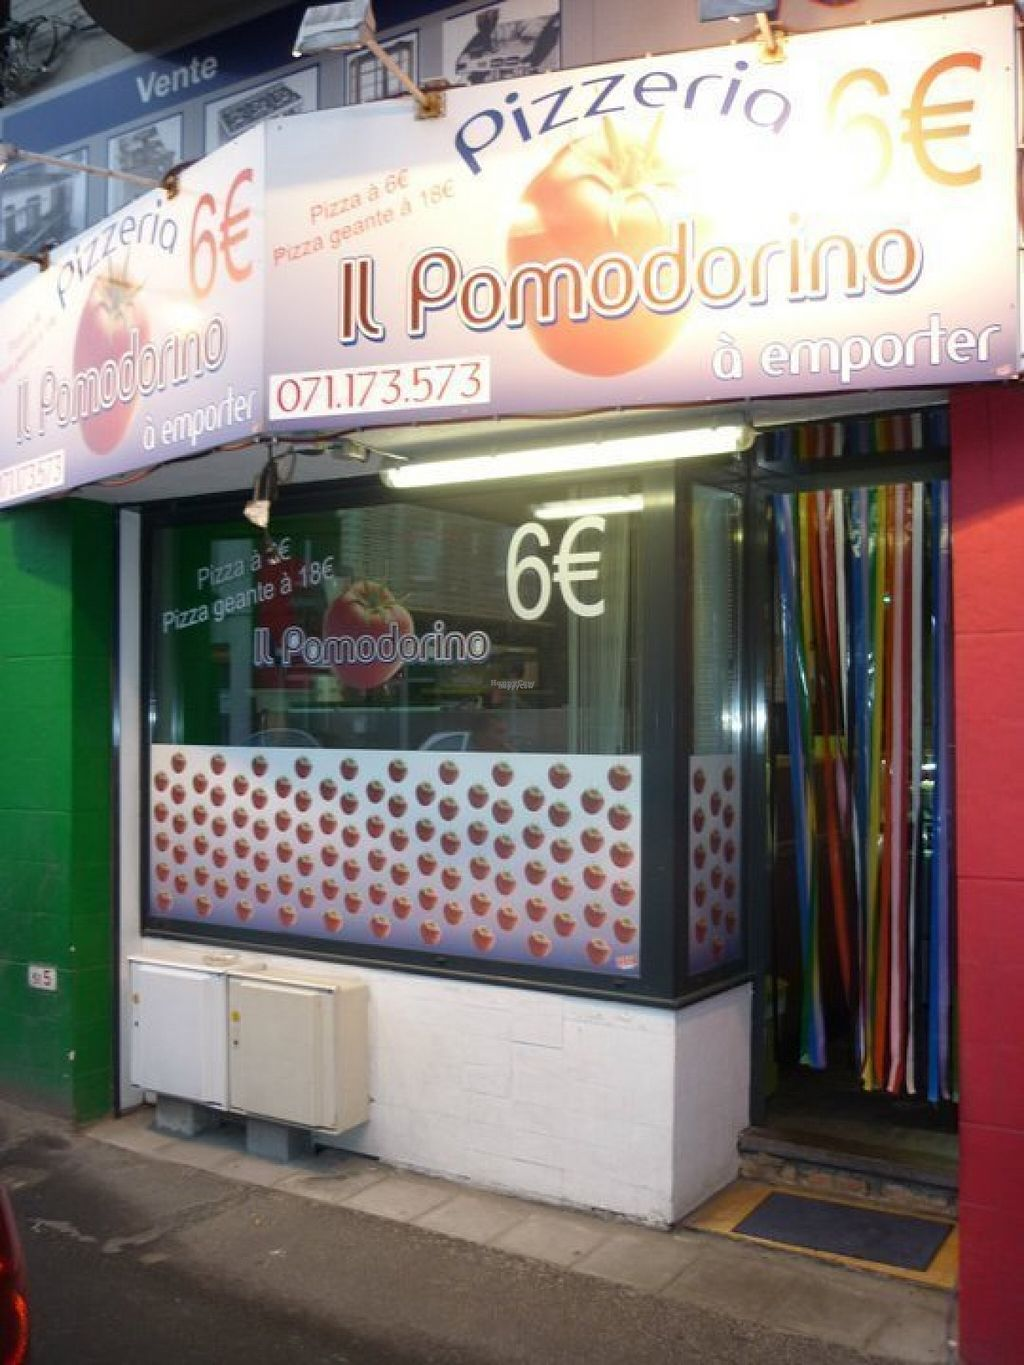 """Photo of Il Pomodorino  by <a href=""""/members/profile/Perky"""">Perky</a> <br/>store front <br/> August 4, 2016  - <a href='/contact/abuse/image/77751/165503'>Report</a>"""